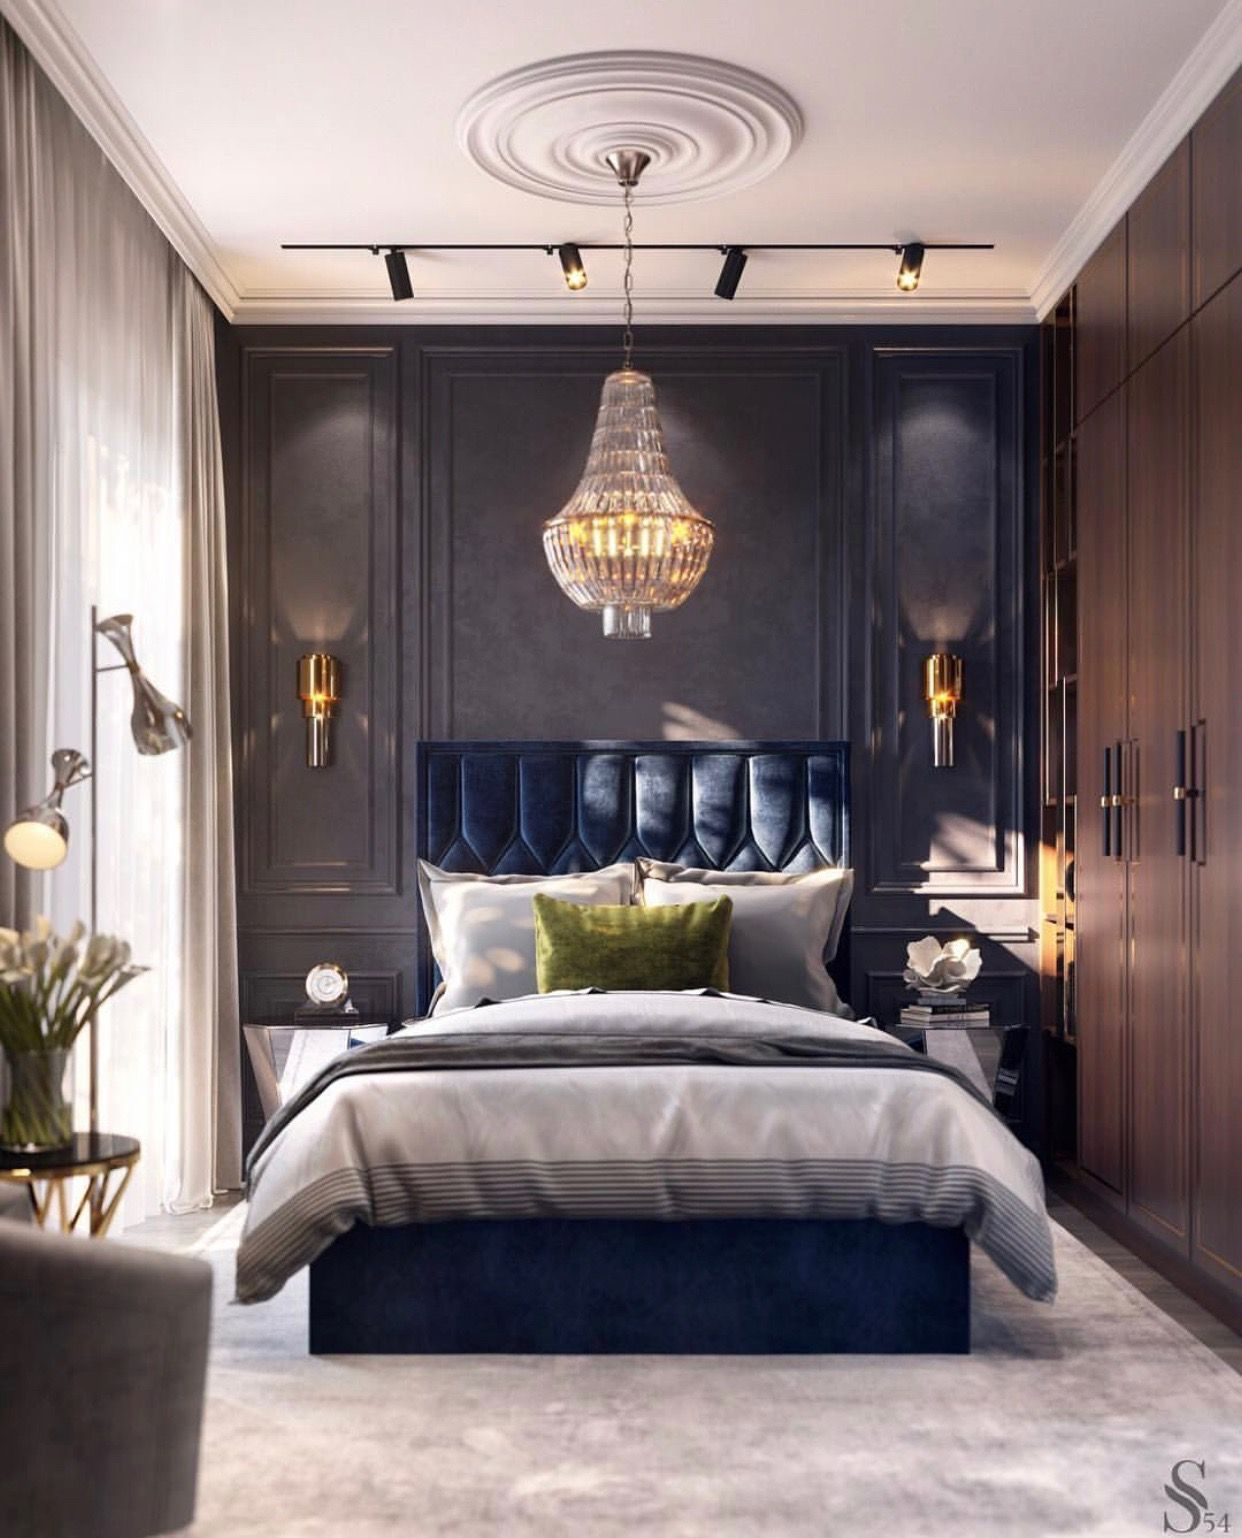 See More Luxury Bedroom Lighting Fixtres For Your Next Interior Design Project At Luxxu Net Int Luxurious Bedrooms Master Bedroom Furniture Bedroom Interior